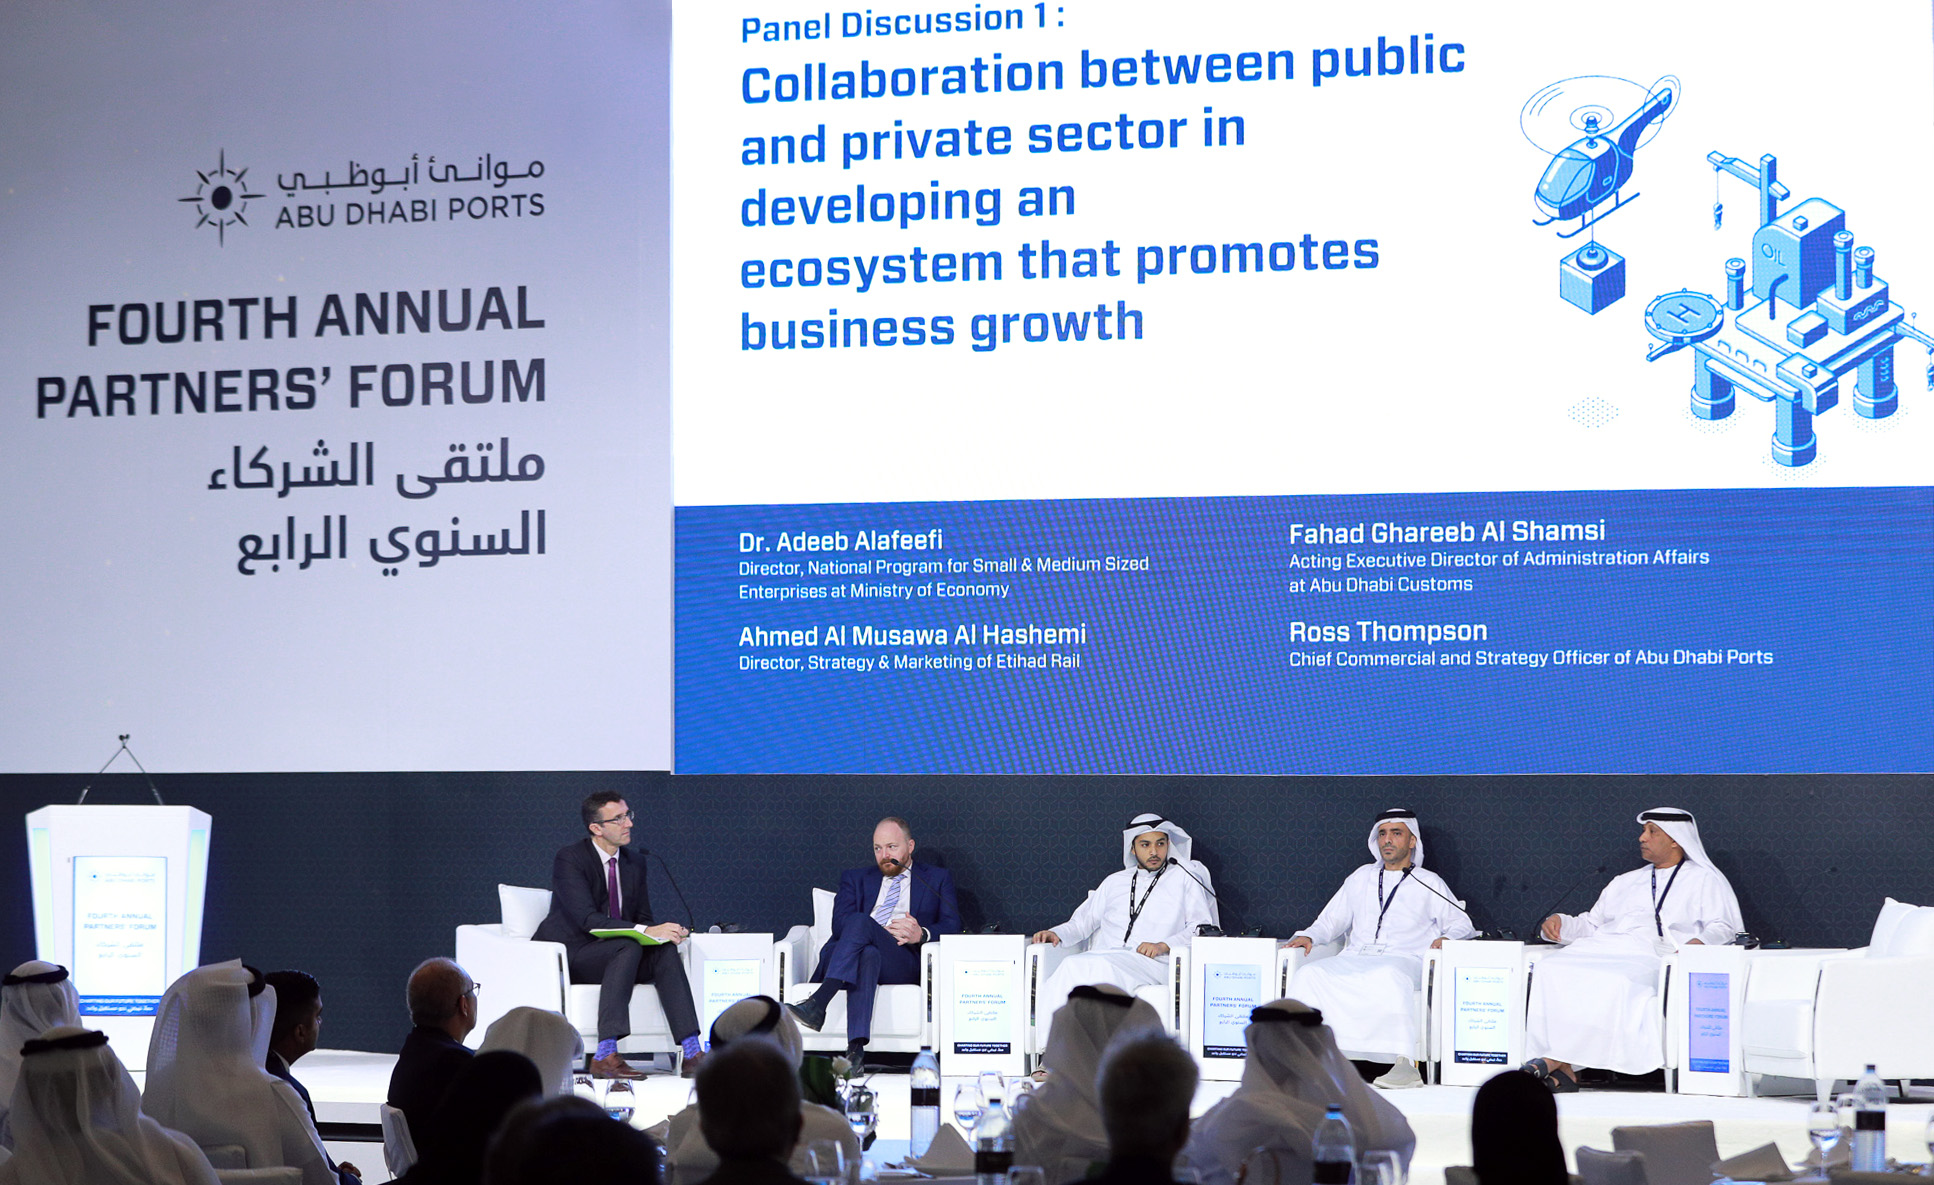 Panel Discussion 1: Collaboration between public and private sector in developing an ecosystem that promotes business growth